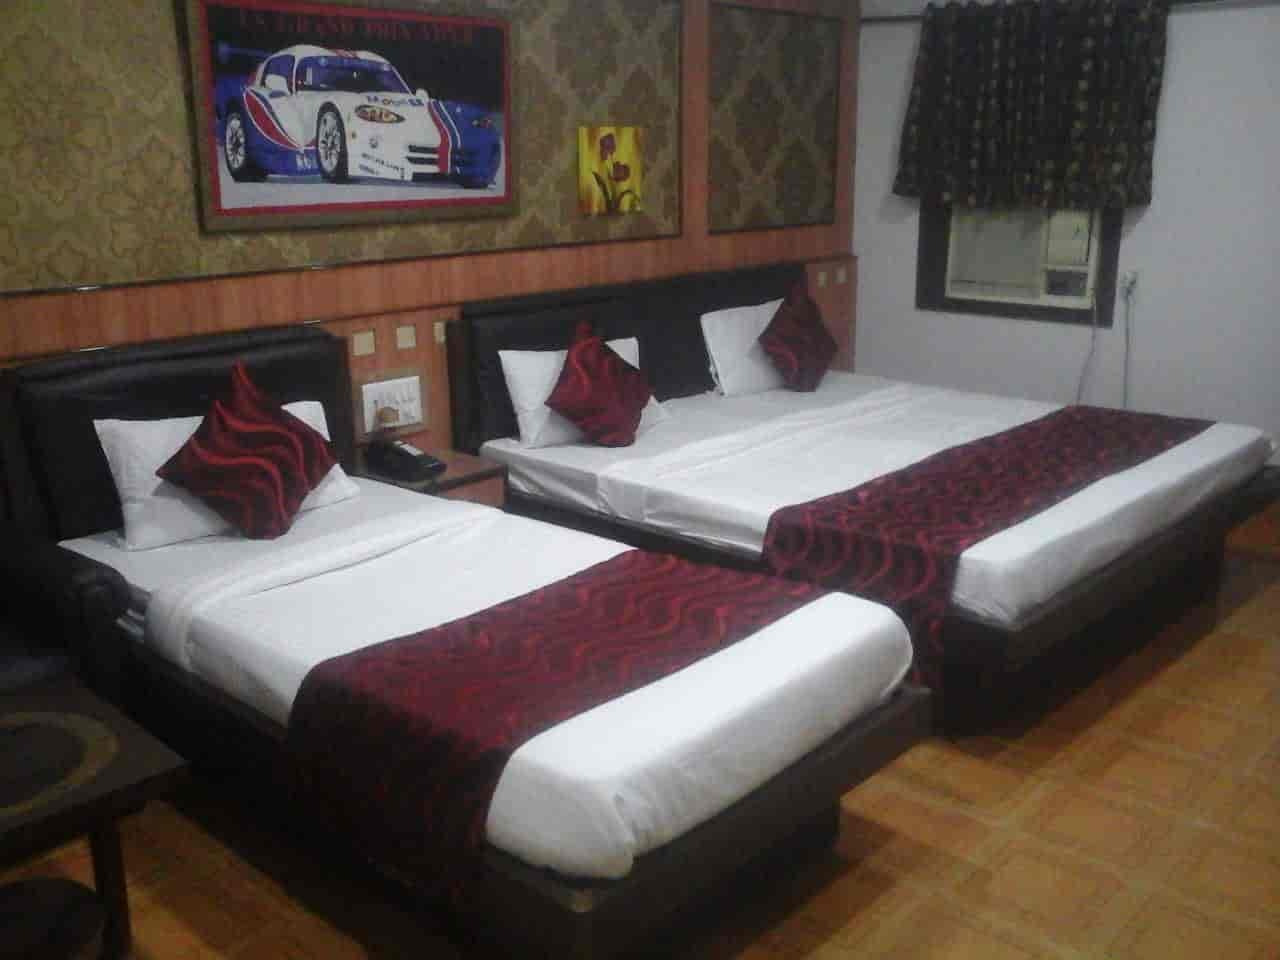 Inside View - Hotel Jk Raj Regency Images, M G Road Raipur, Raipur-Chhattisgarh - Hotels